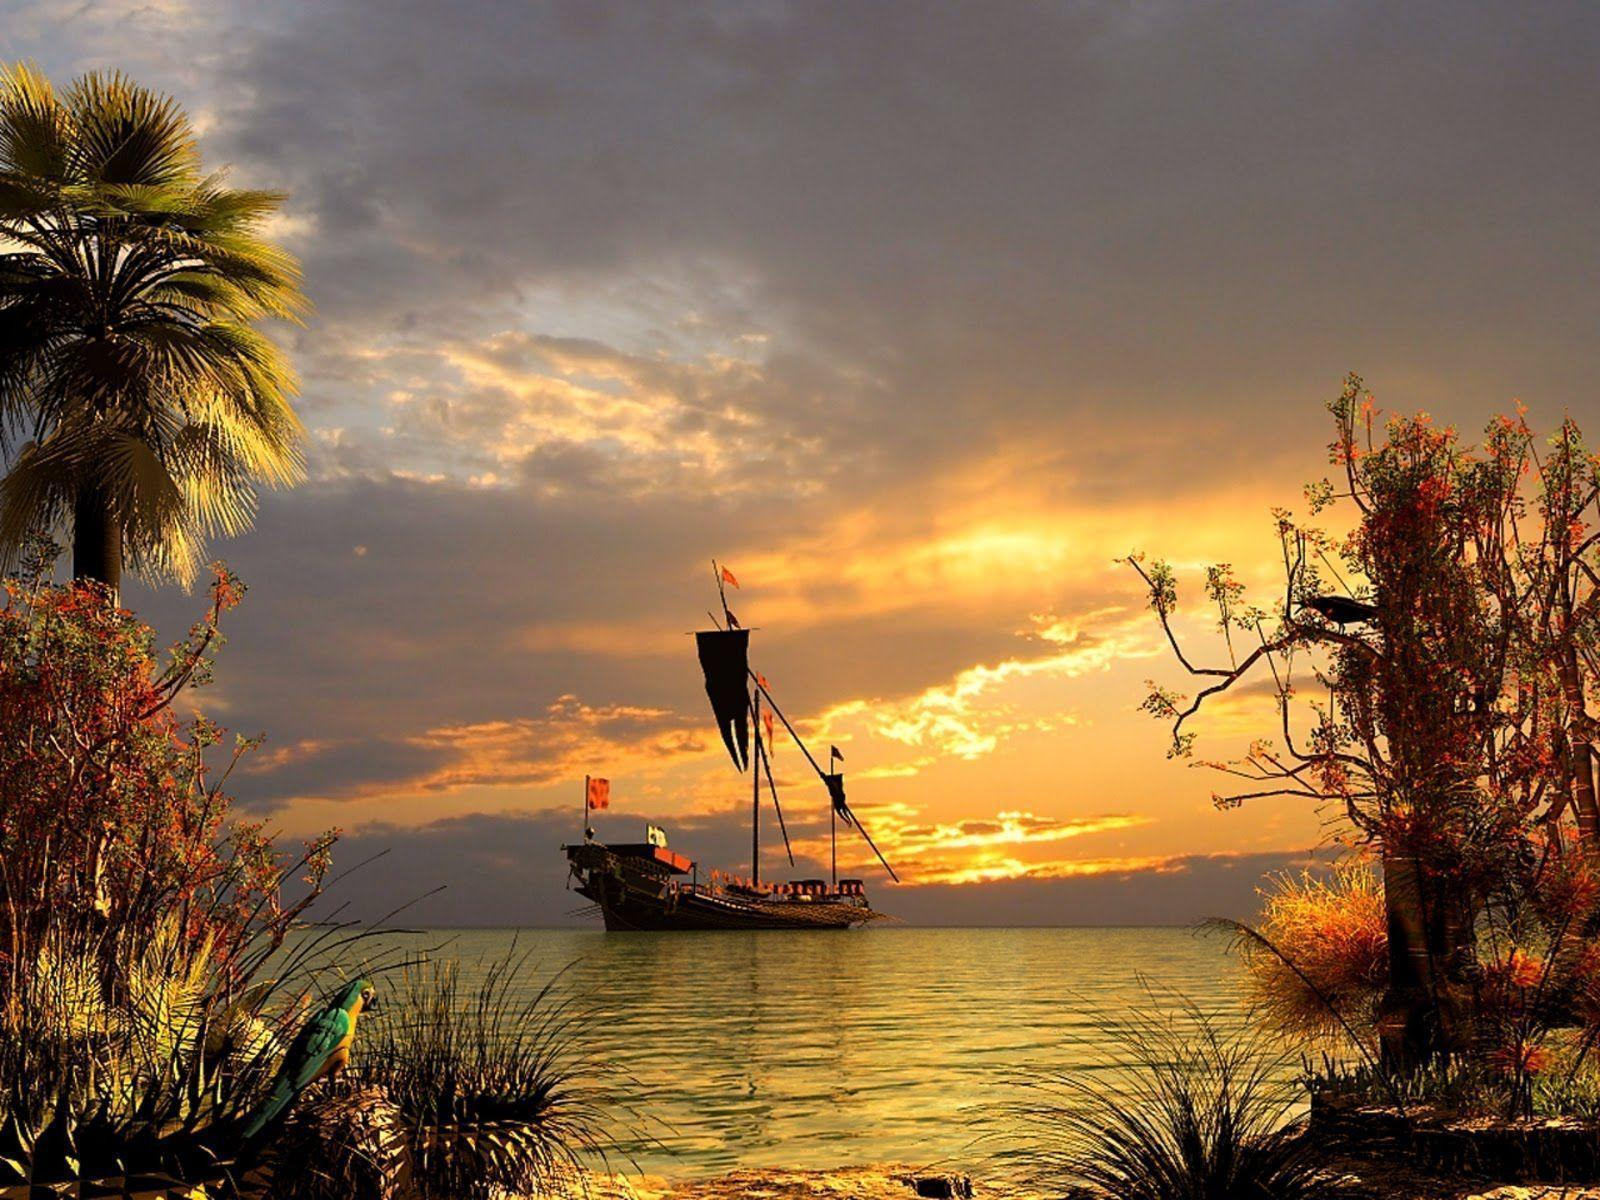 pirate ship computer wallpapers - photo #23